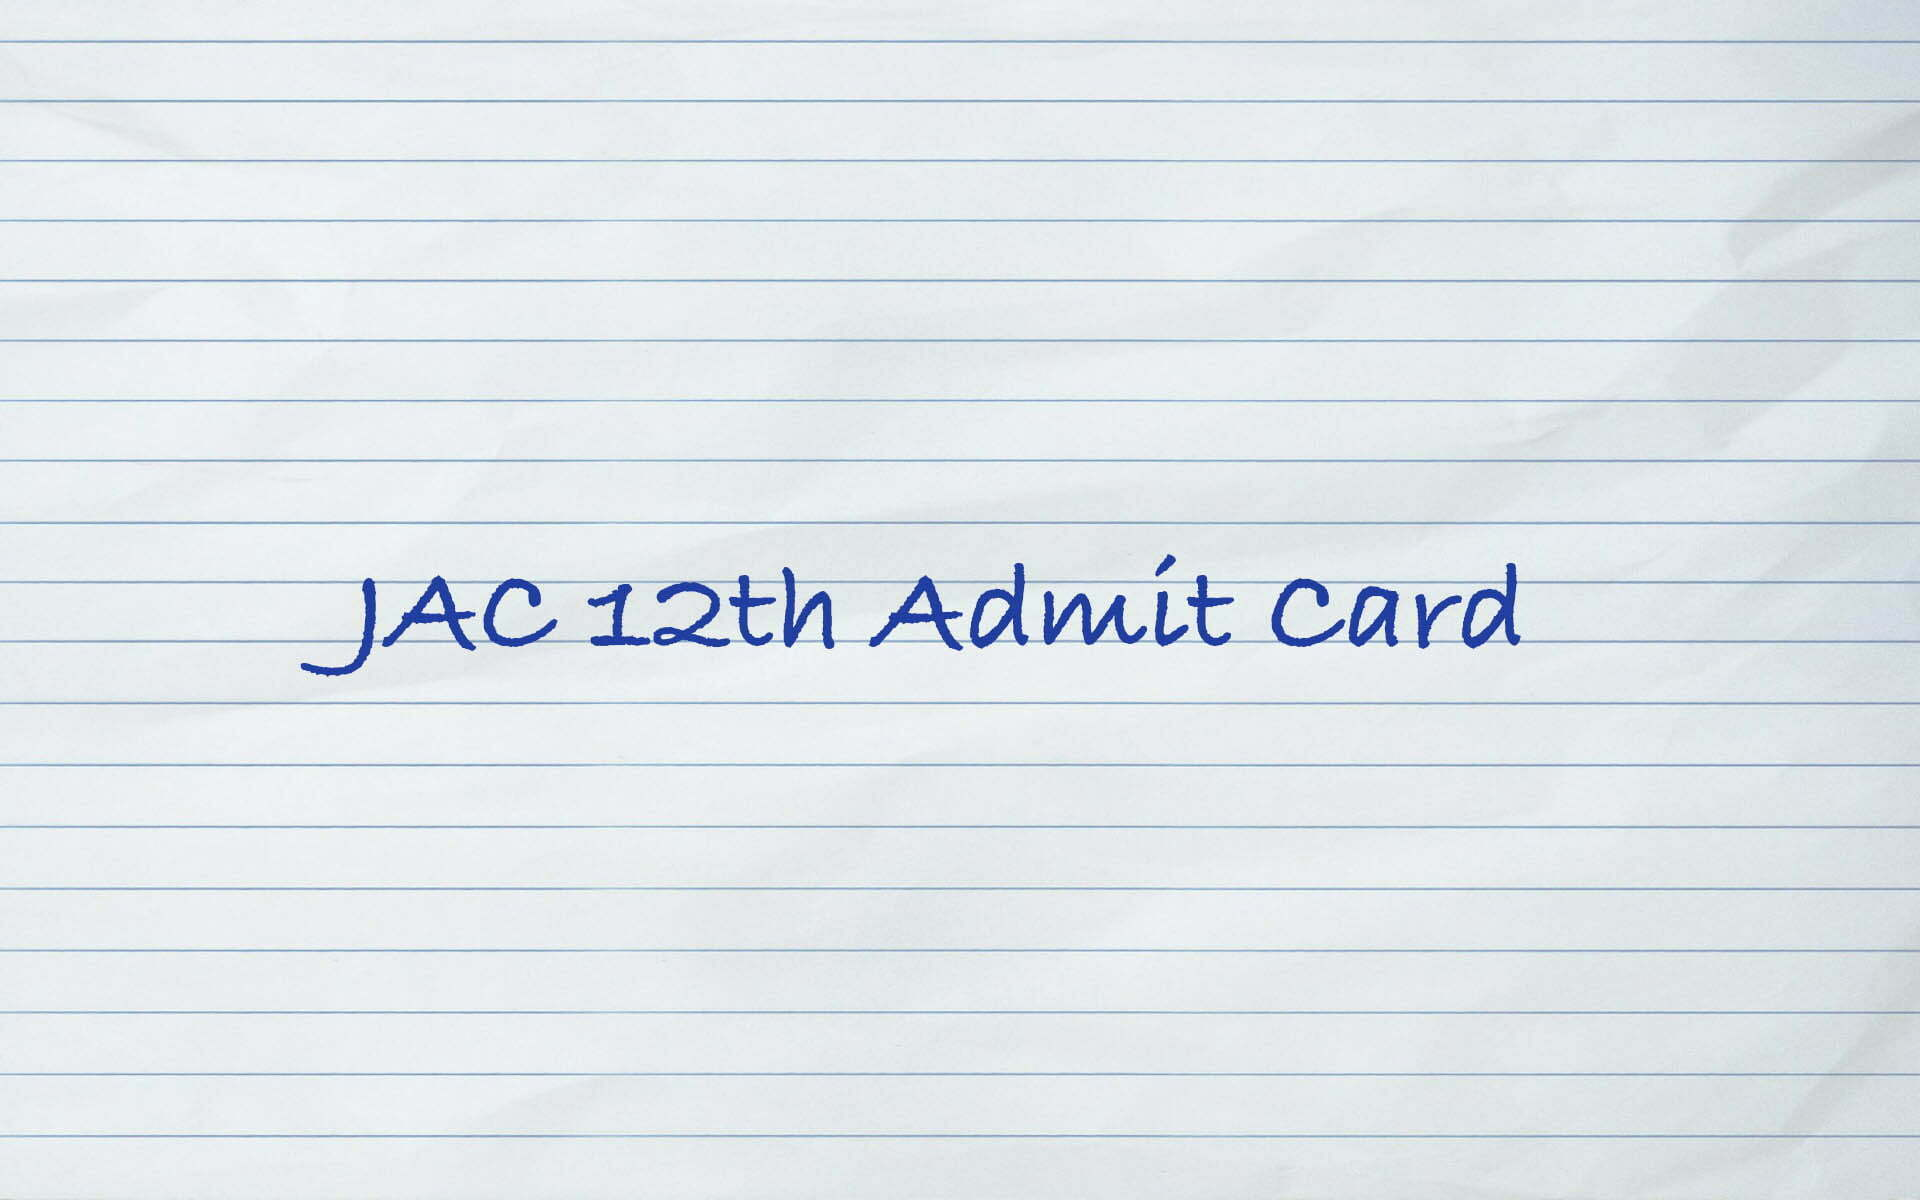 JAC 12th Admit Card